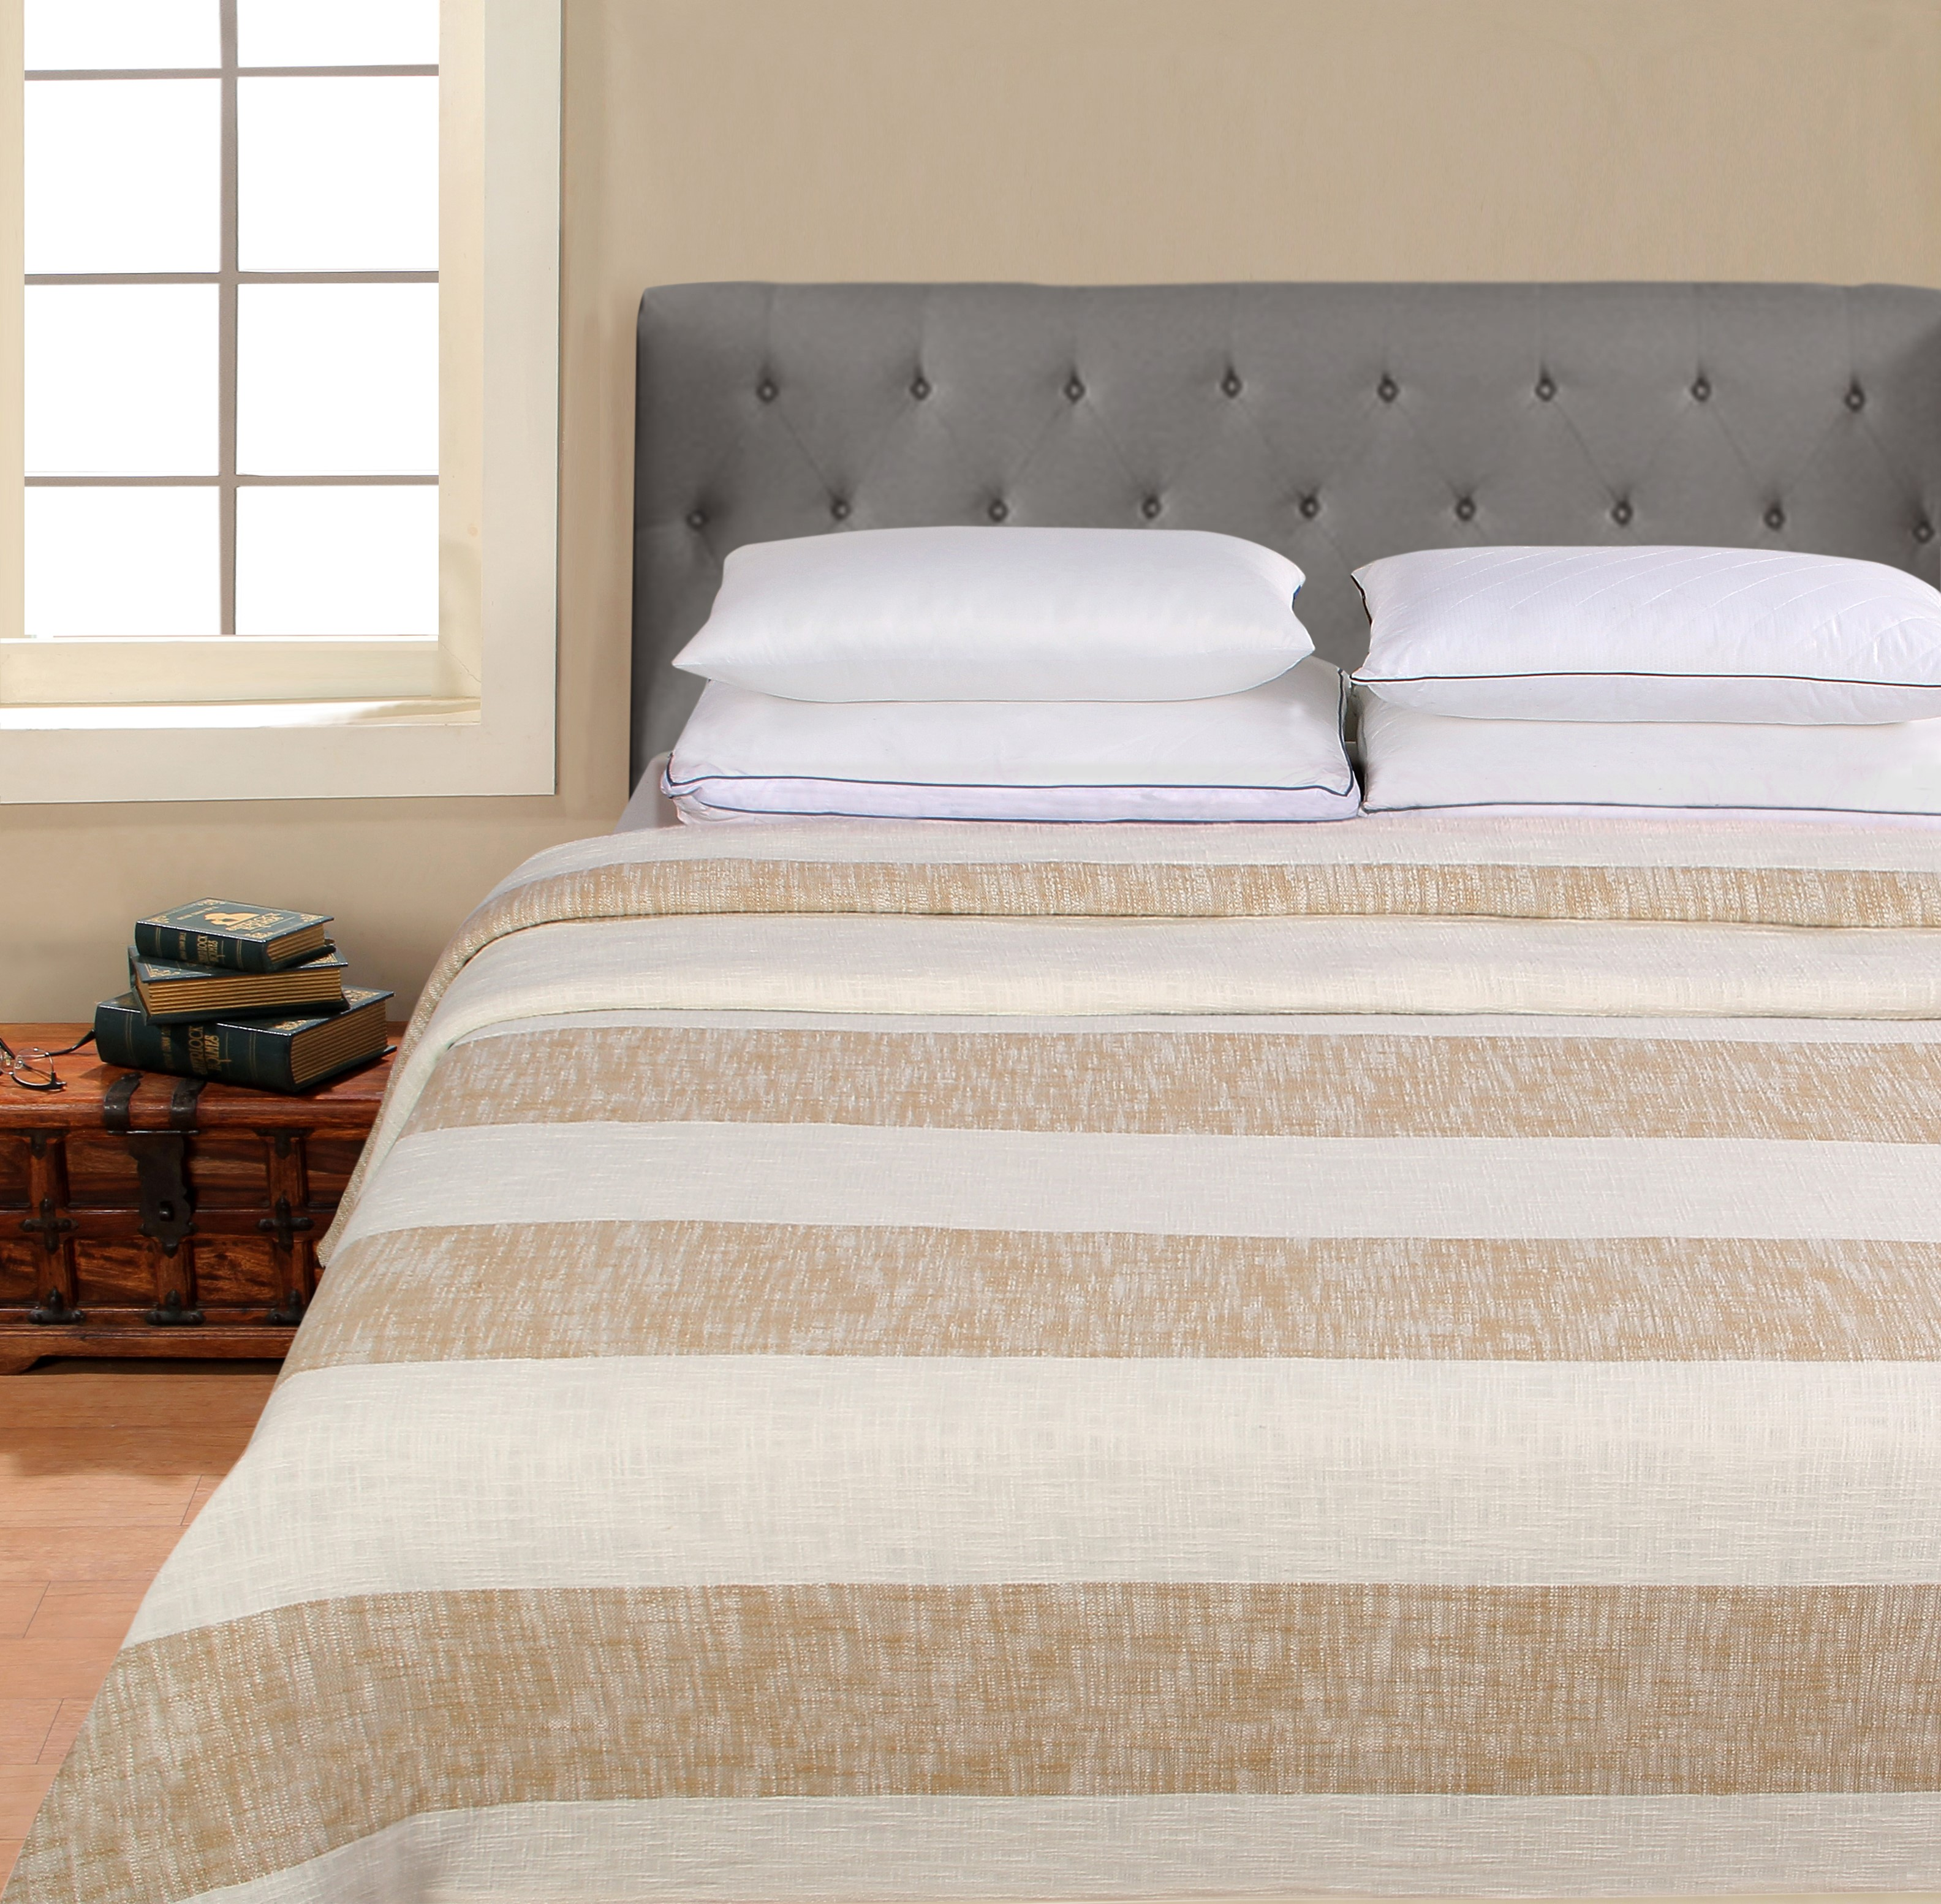 Better Homes & Gardens 100% Cotton Blanket - Washed Rugby Stripe Tan, Full/Queen